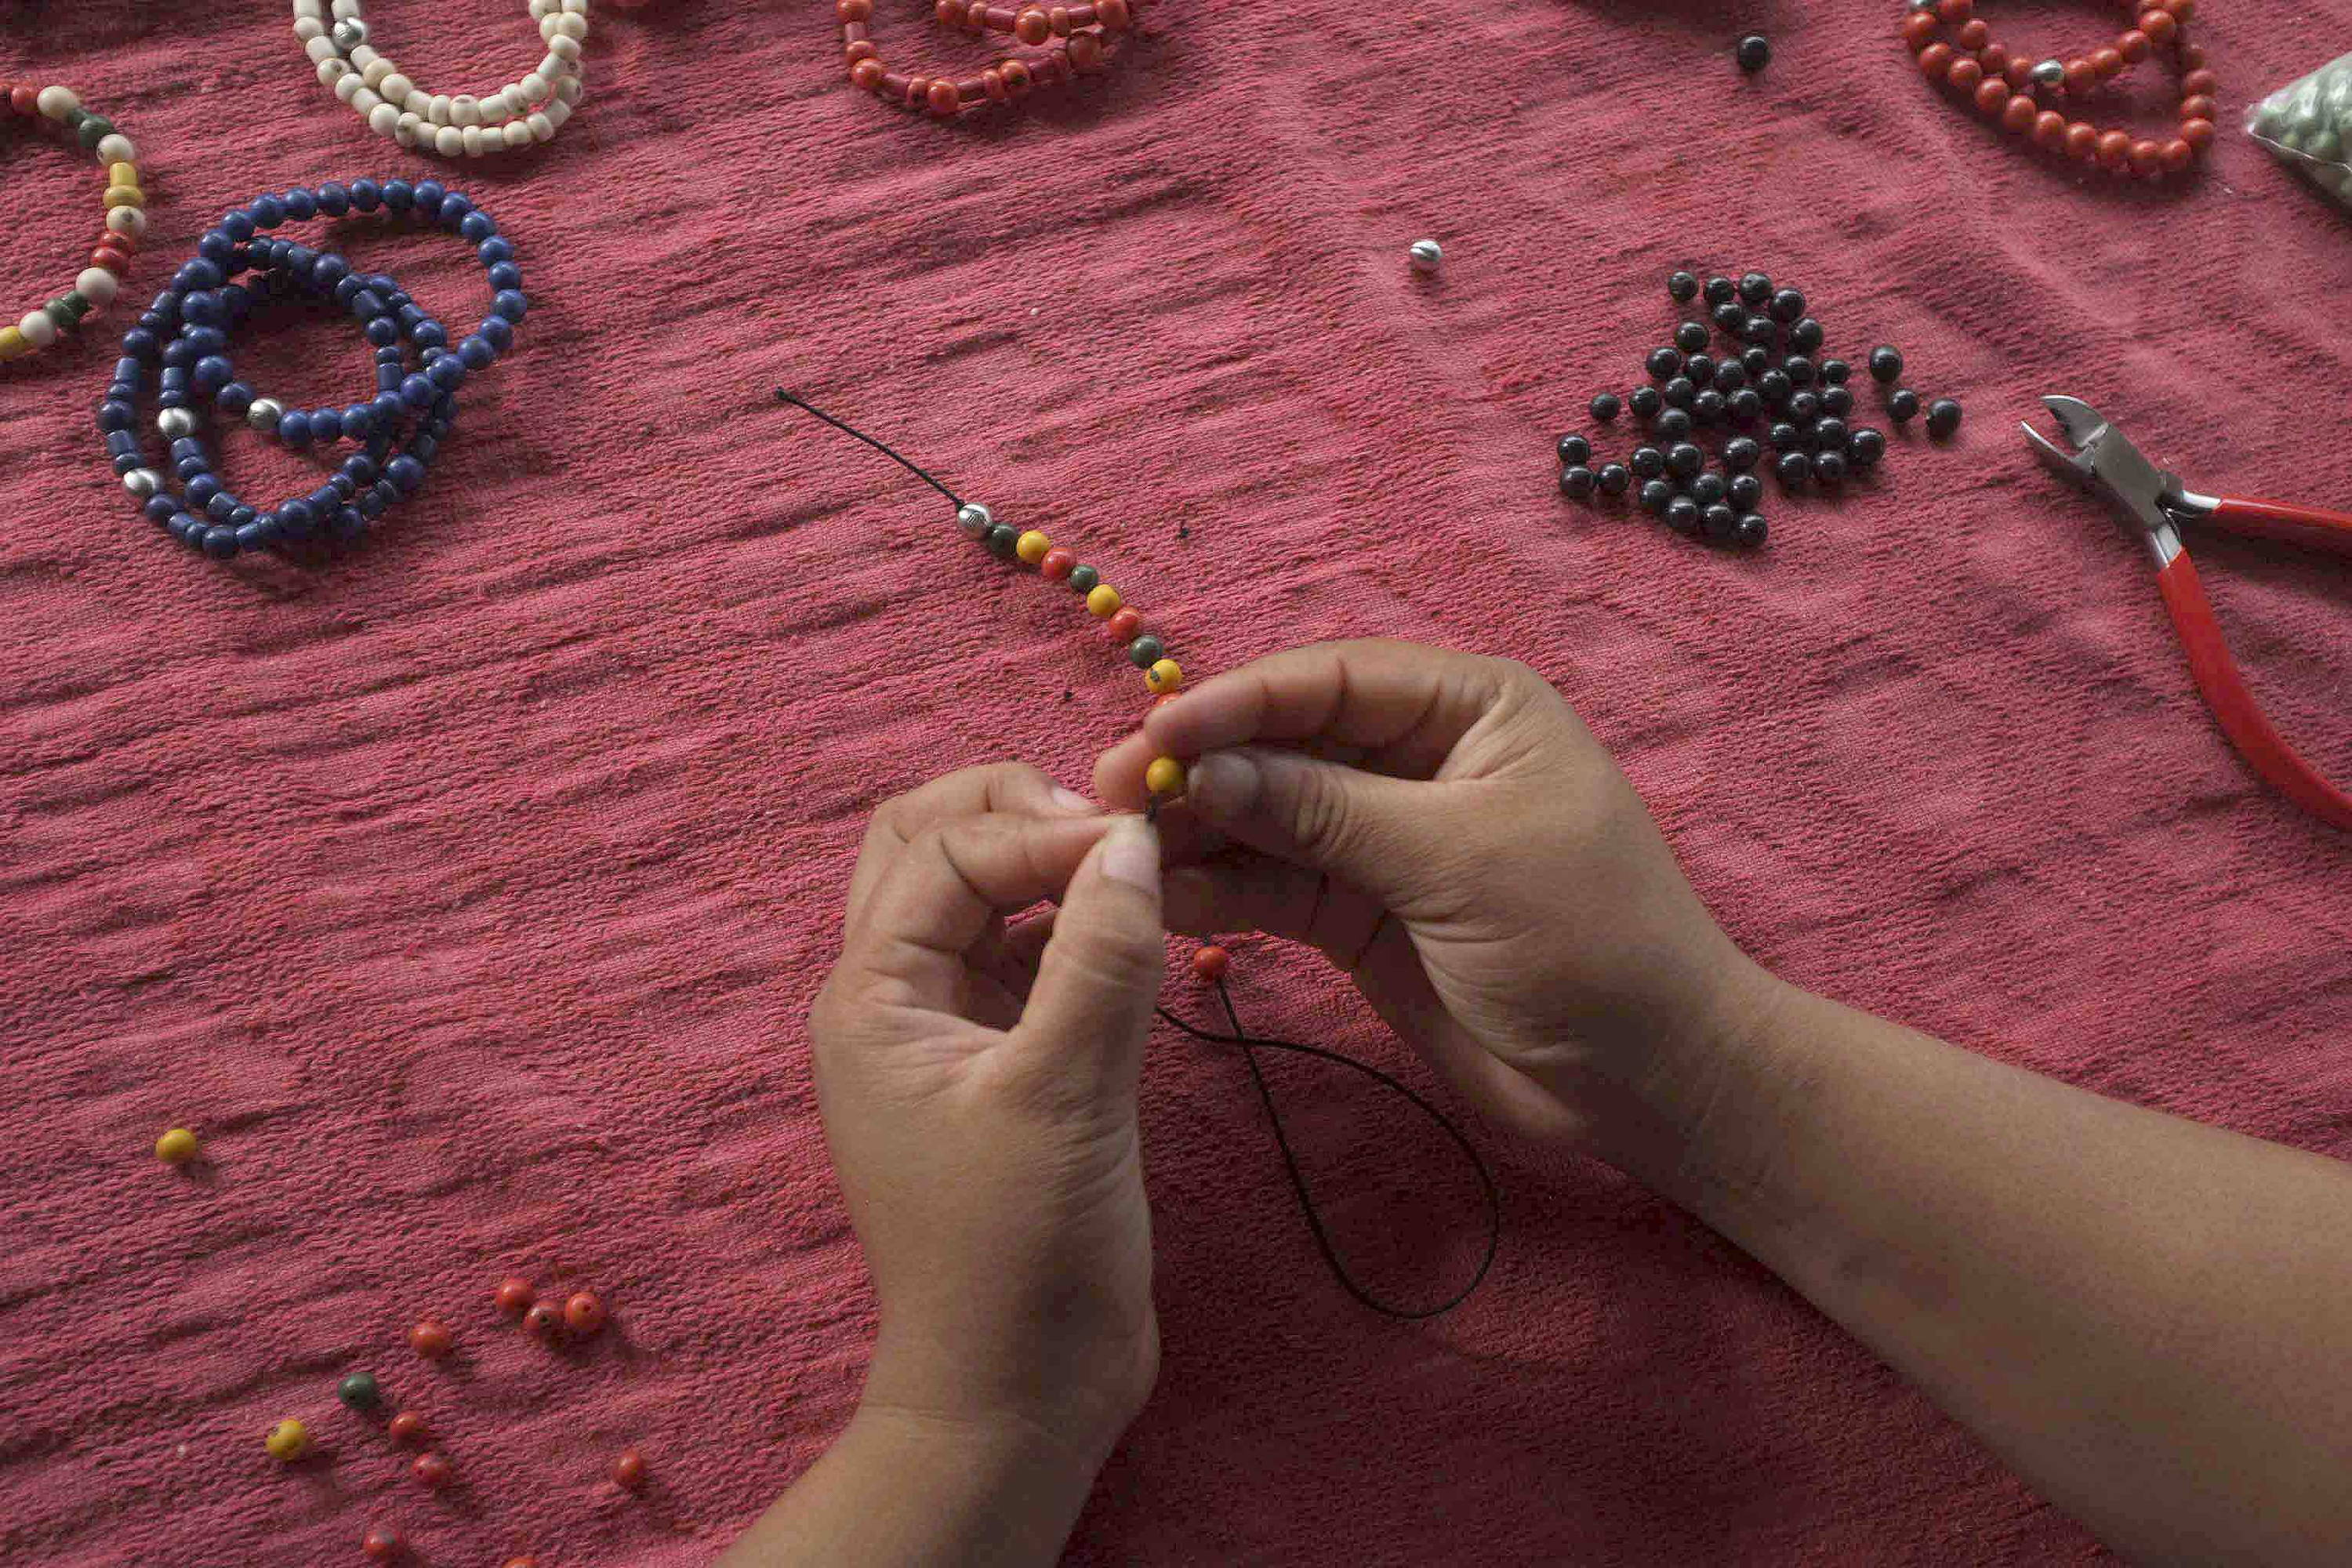 beads being hand-threaded